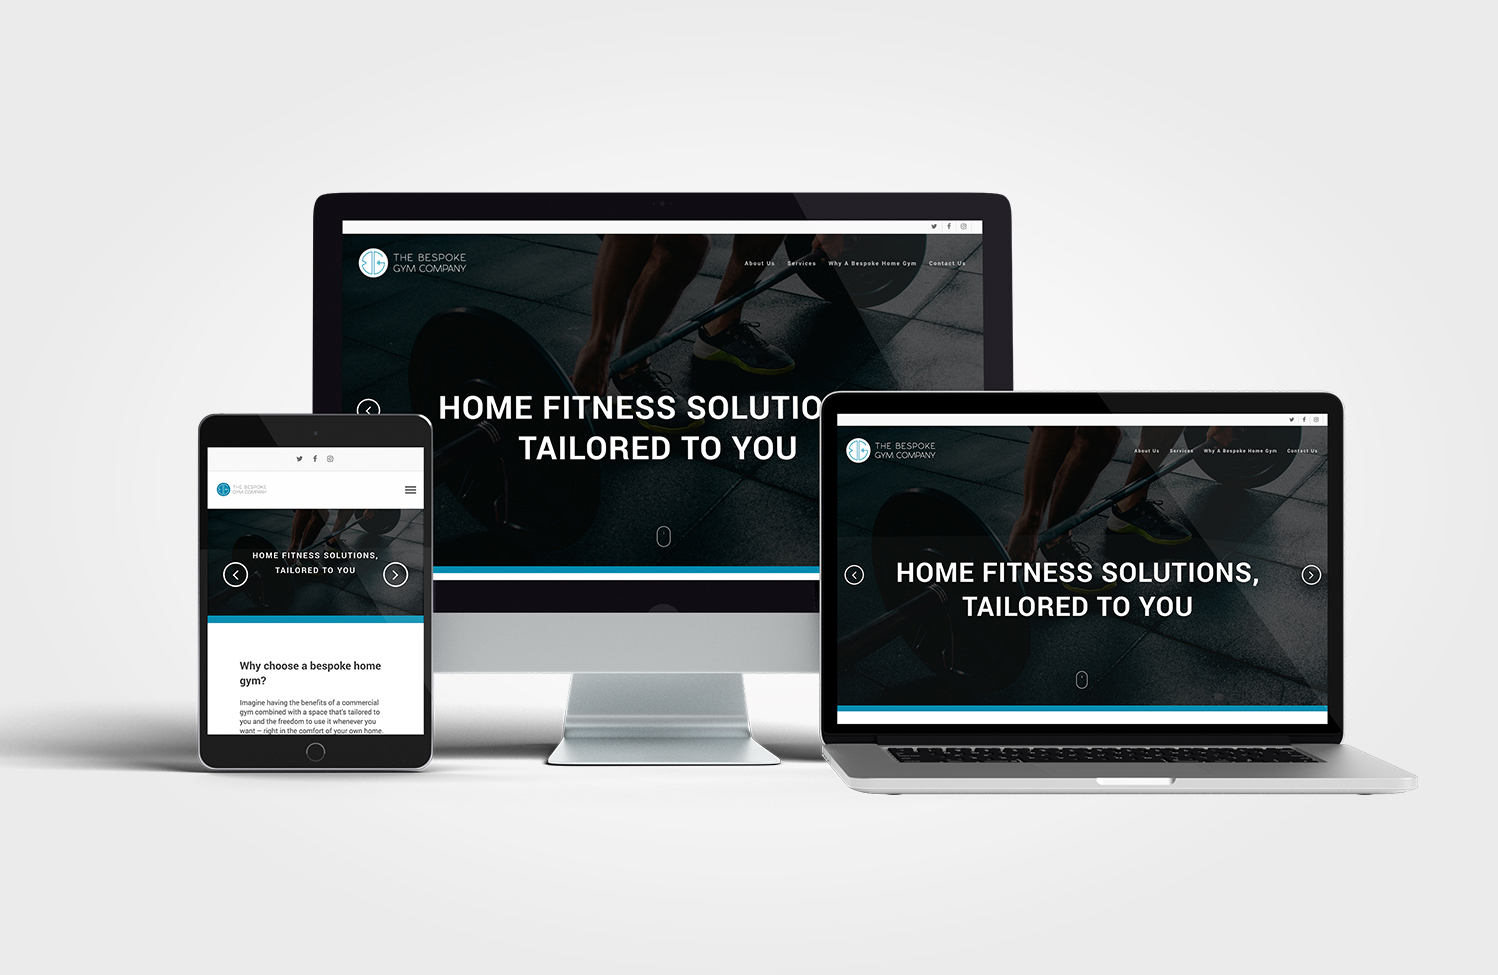 The Bespoke Gym Company Website on multiple devices 2